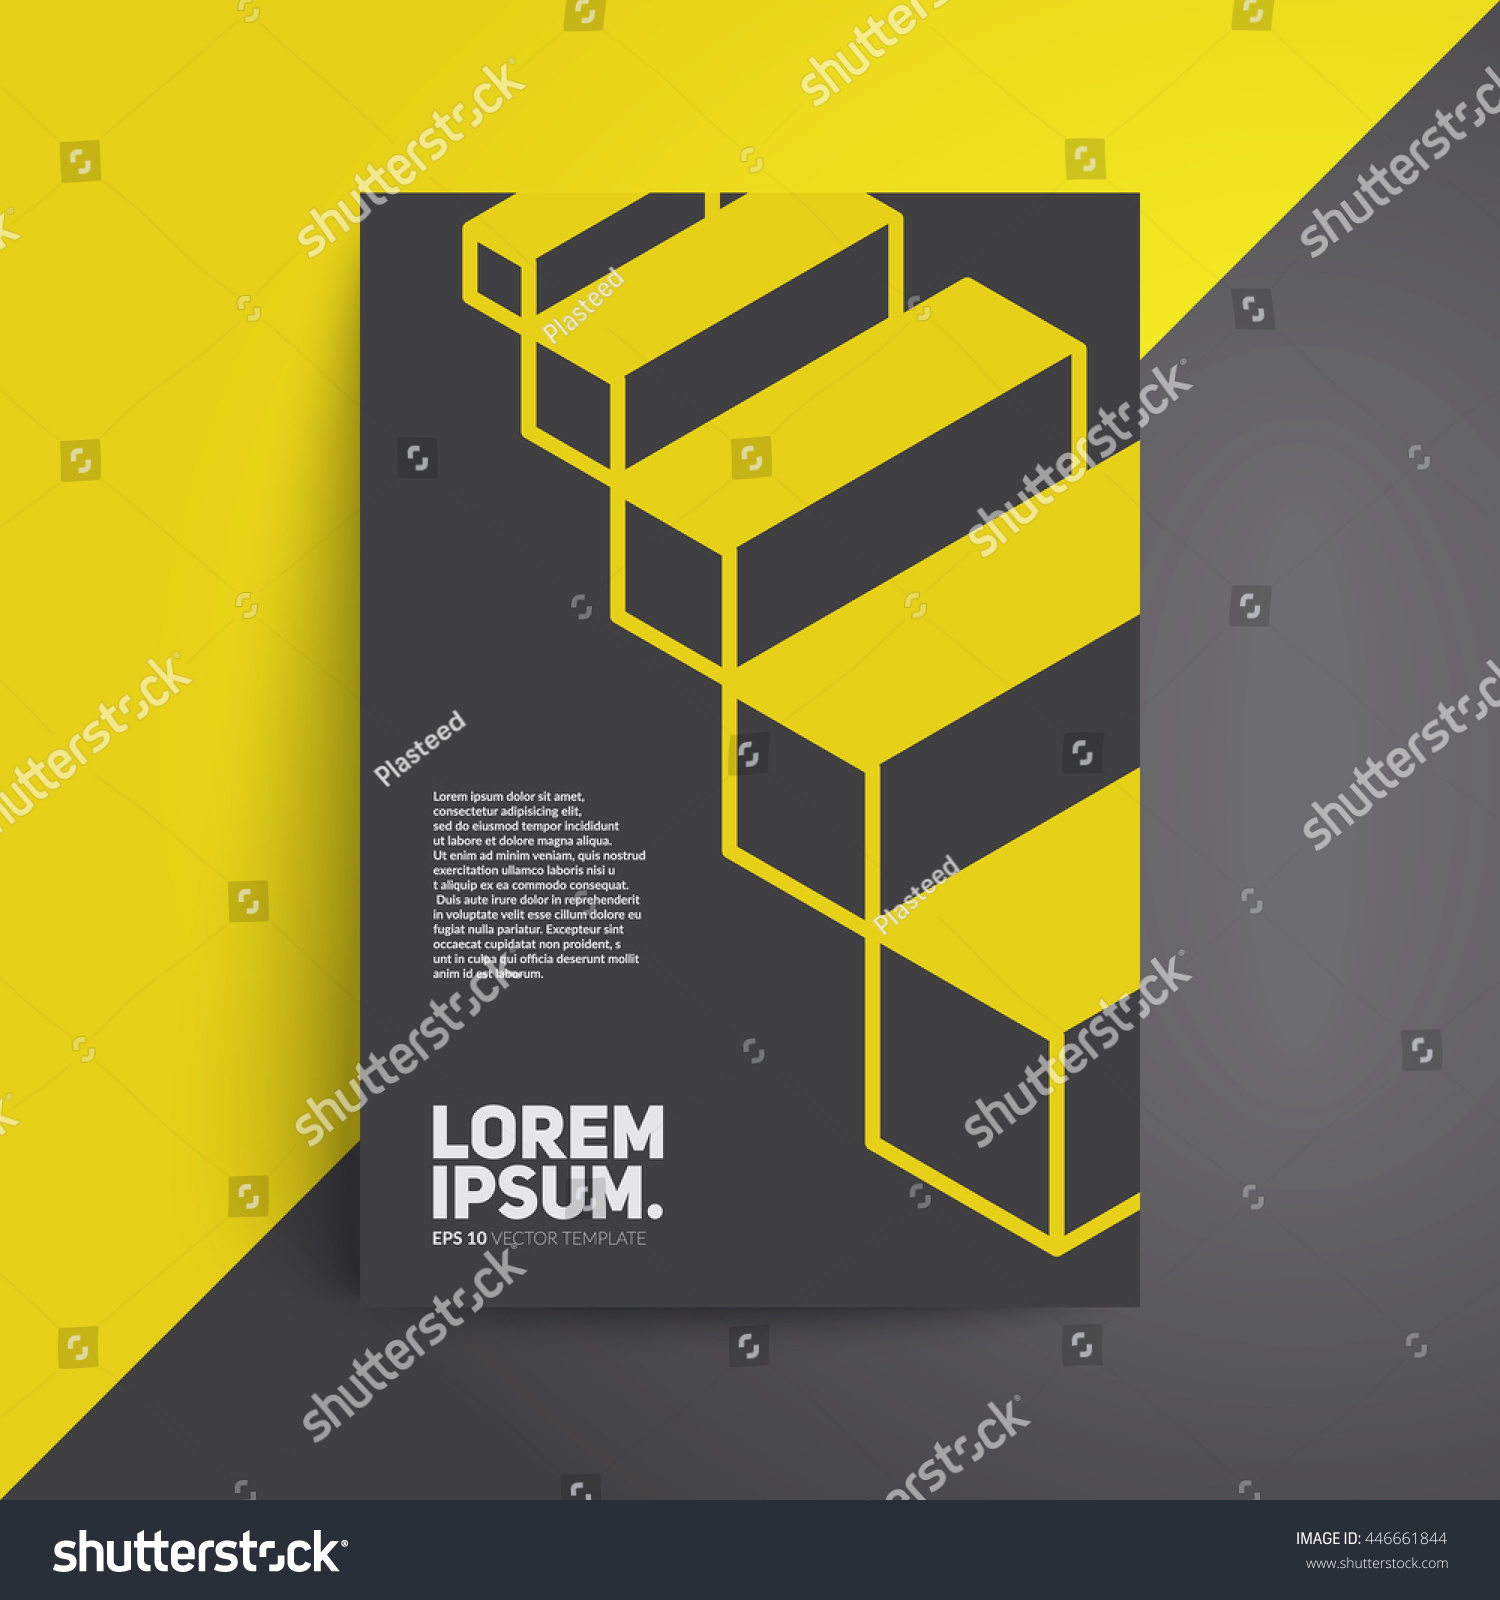 Architecture Book Cover Design ~ Isometric cover design architecture book vector stock